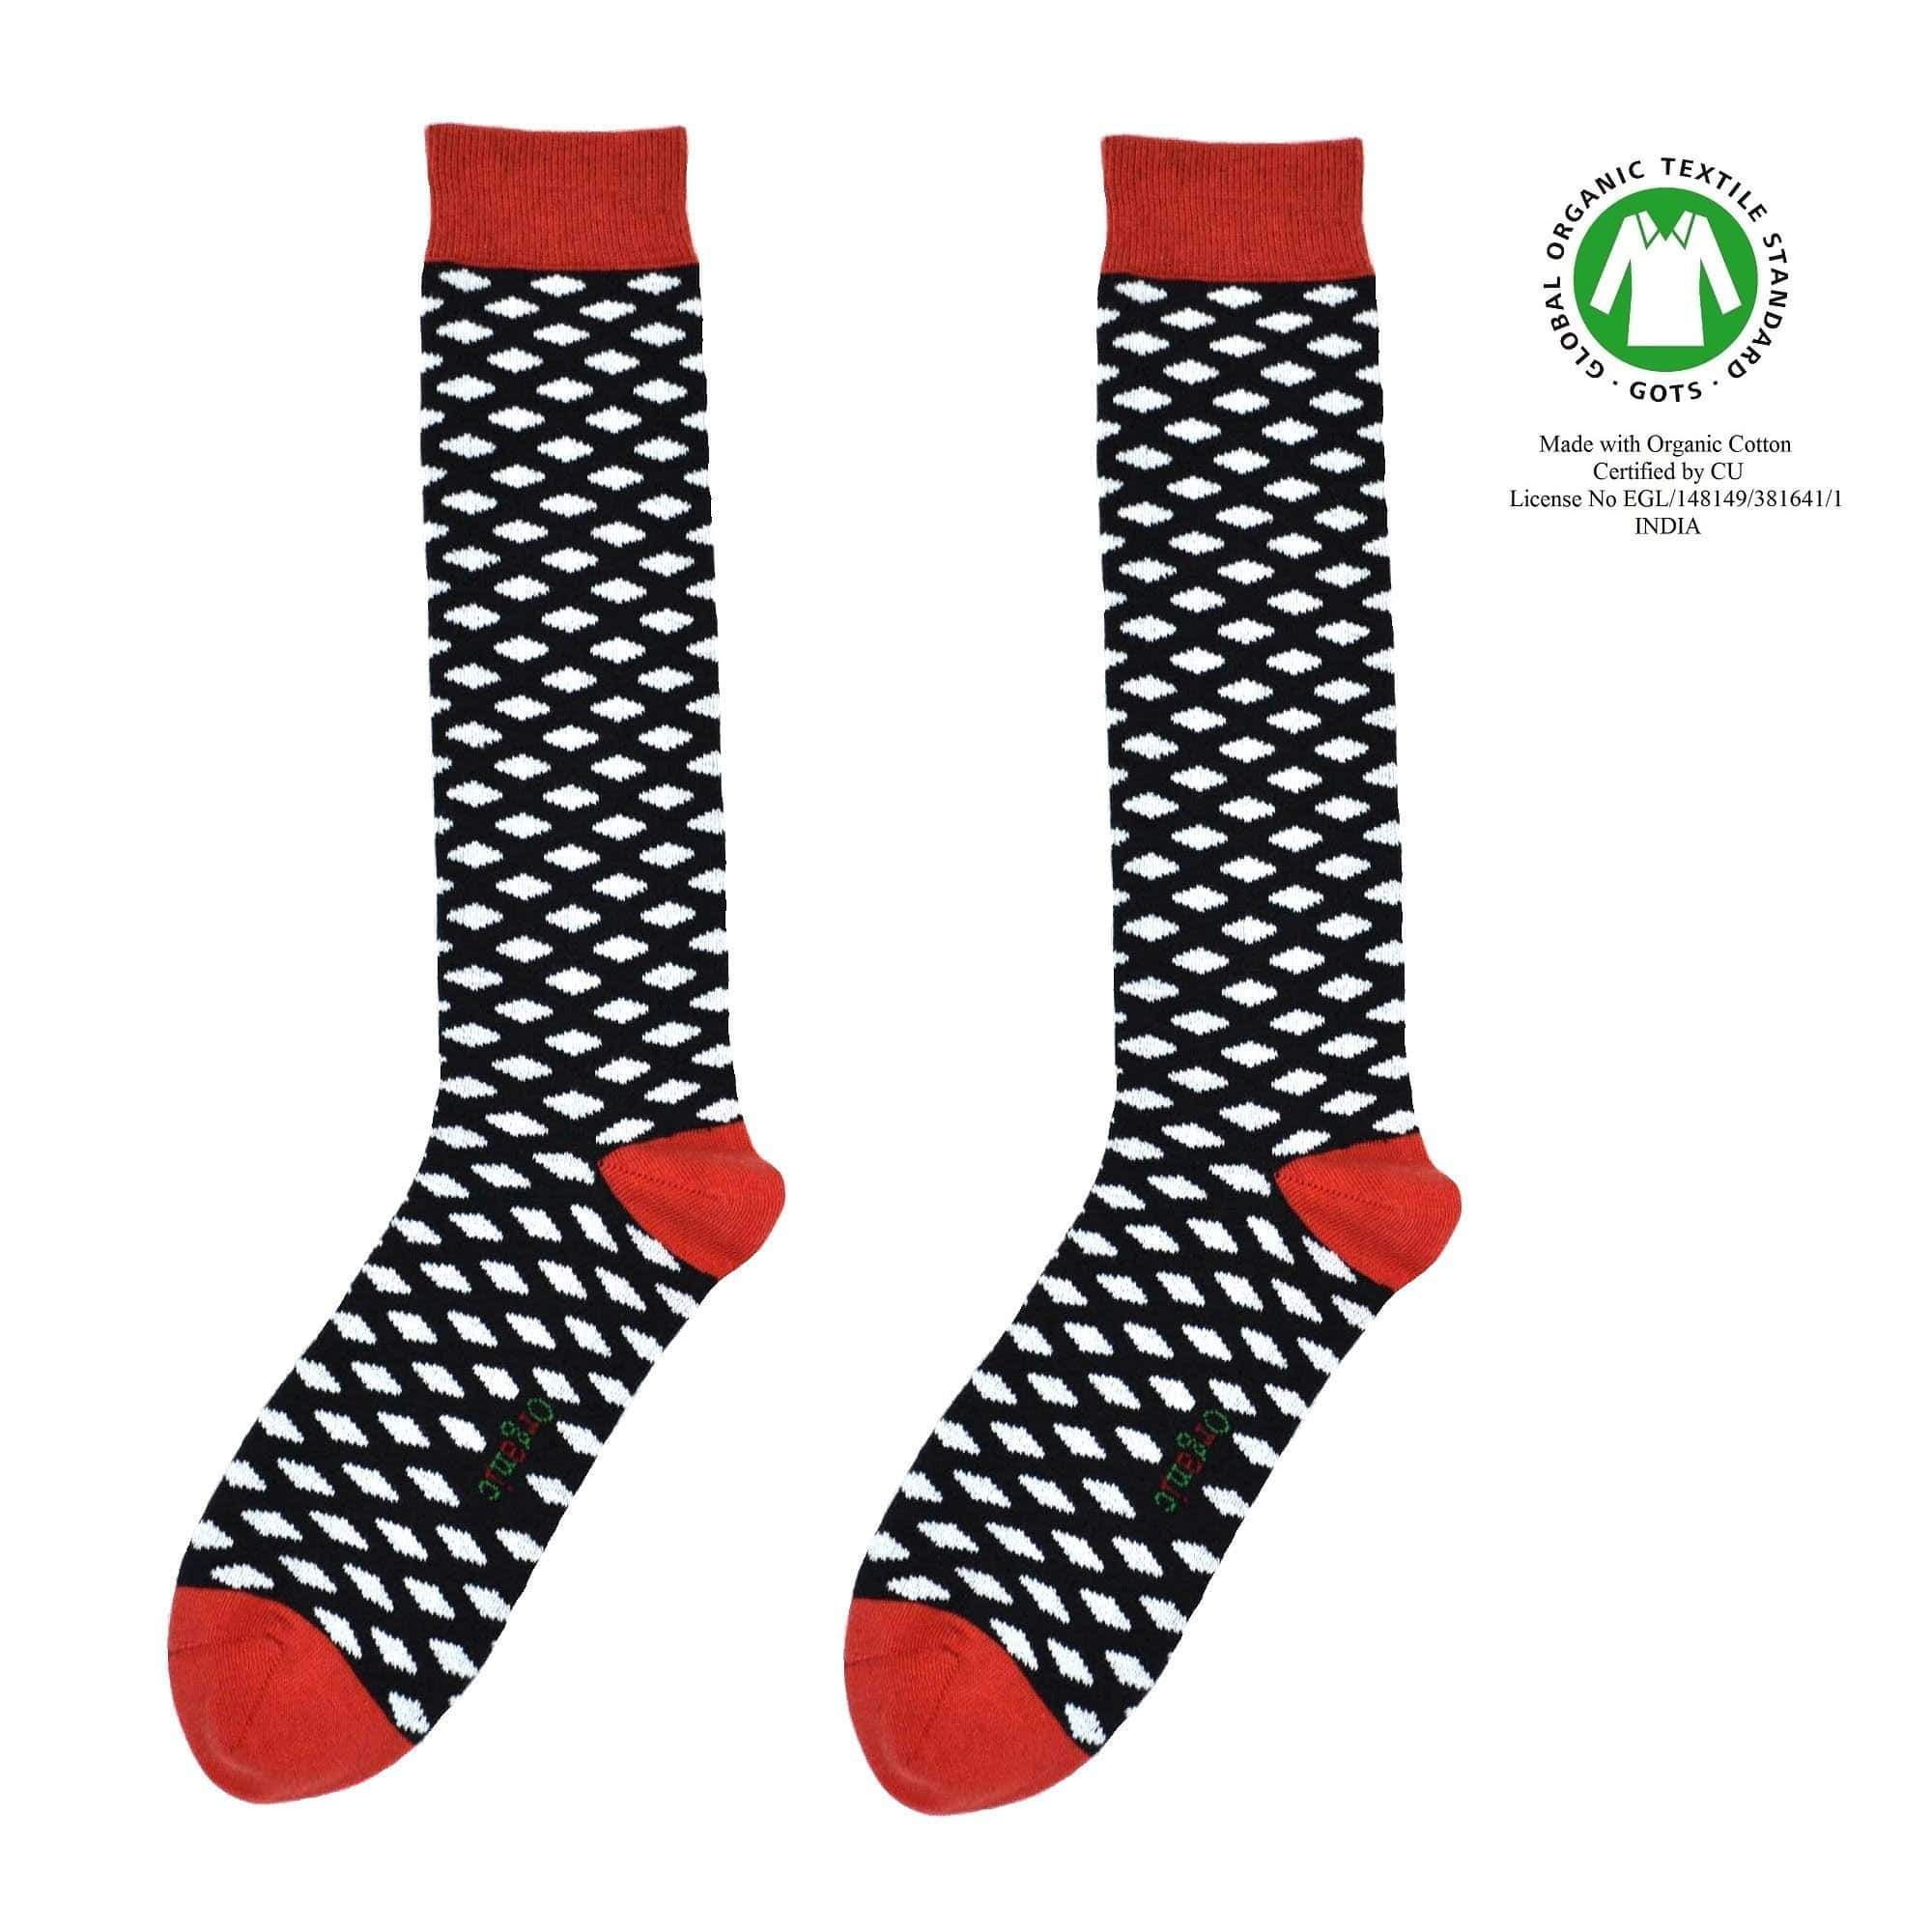 Organic Socks of Sweden sock Dalberg Socks. Organic Cotton. sustainable fashion ethical fashion